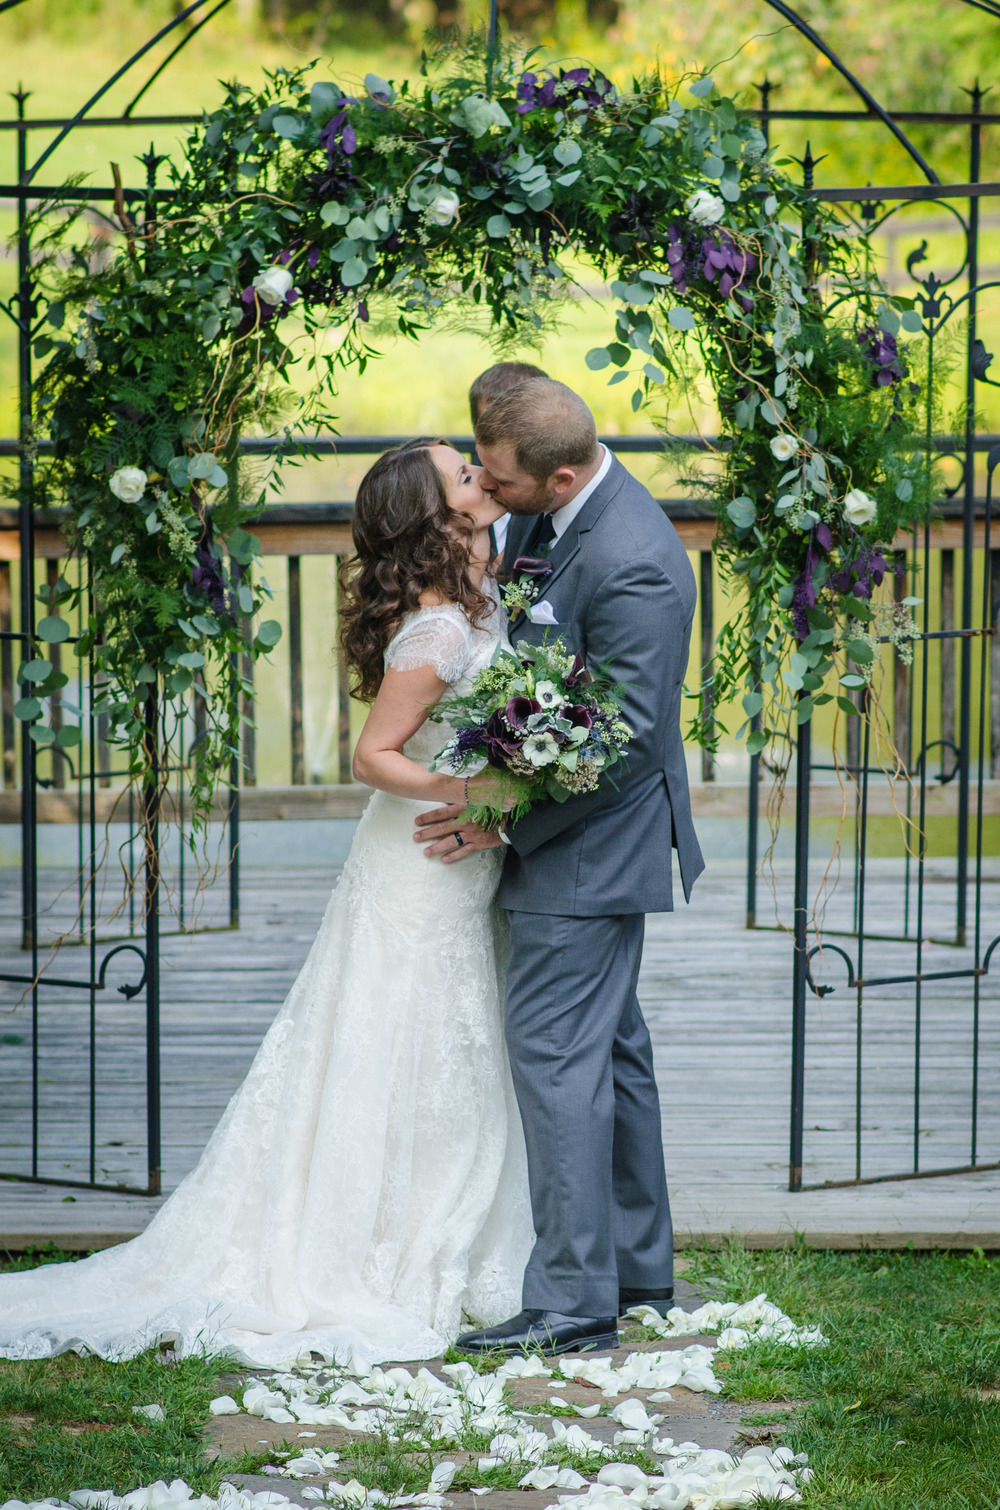 Assorted Purple Florals on Trellis (Photo Credit: Higher Focus Studios)